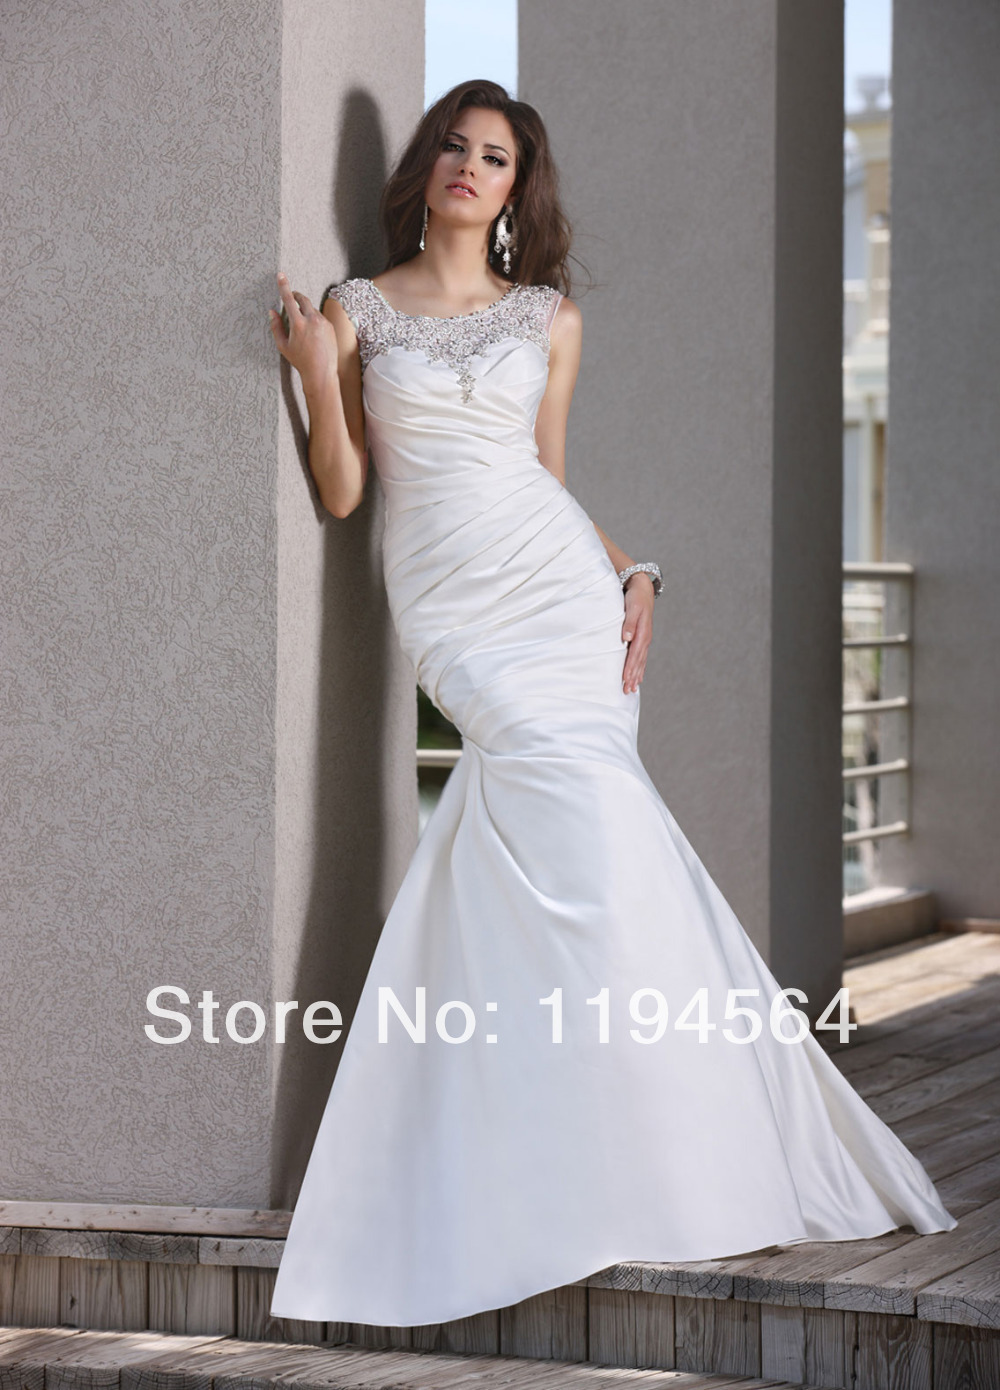 afternoon wedding reception dresses for wedding Dresses for Wedding Guests